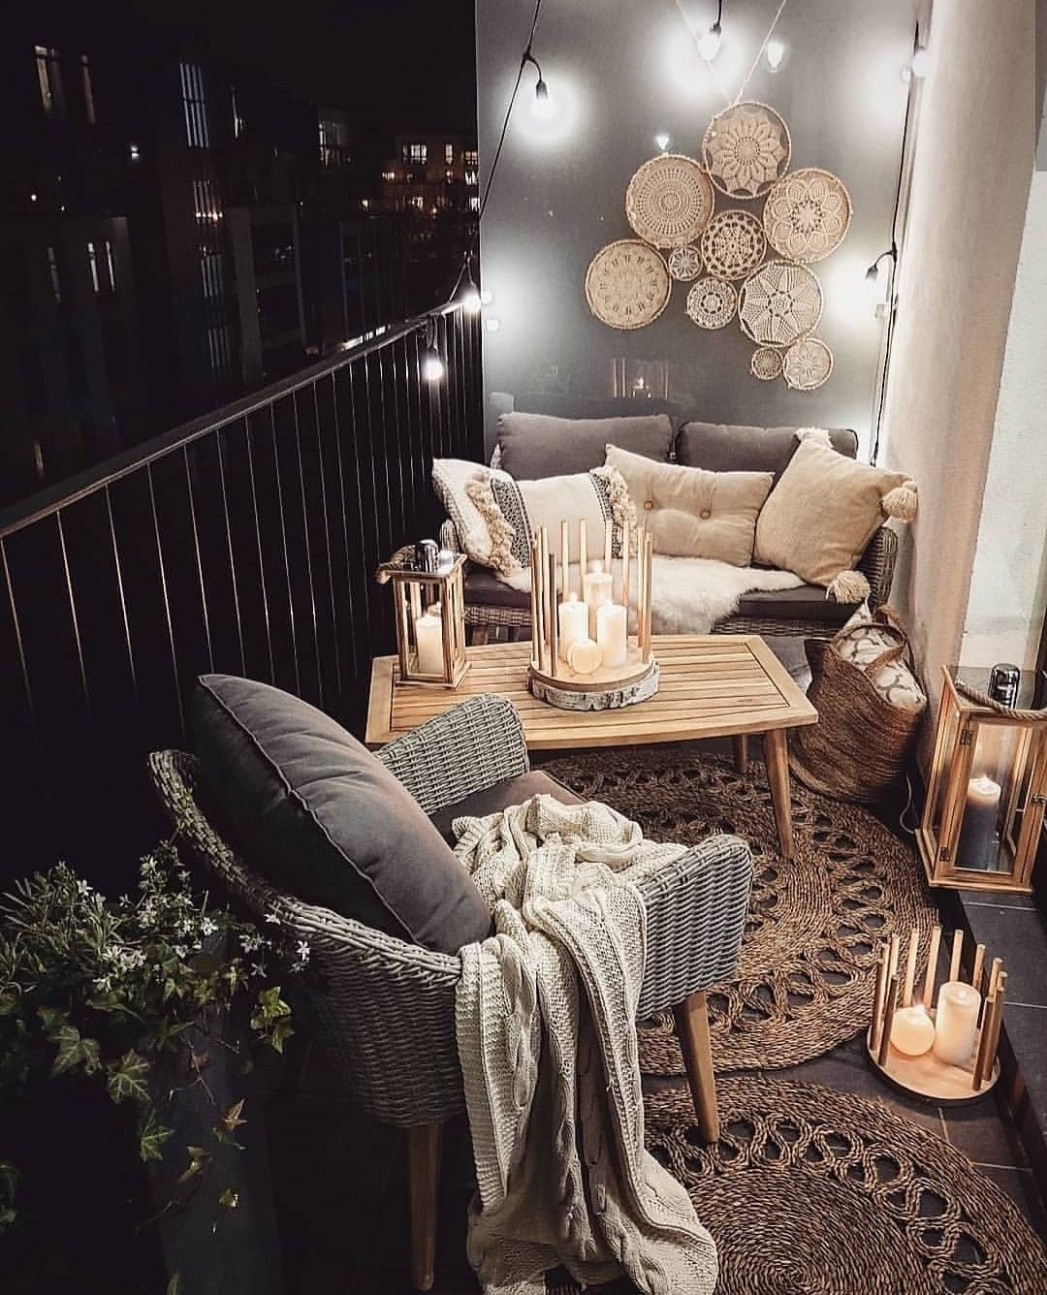 The Best Decorated Small Outdoor Balconies on Pinterest - living  - Apartment Room Ideas Pinterest